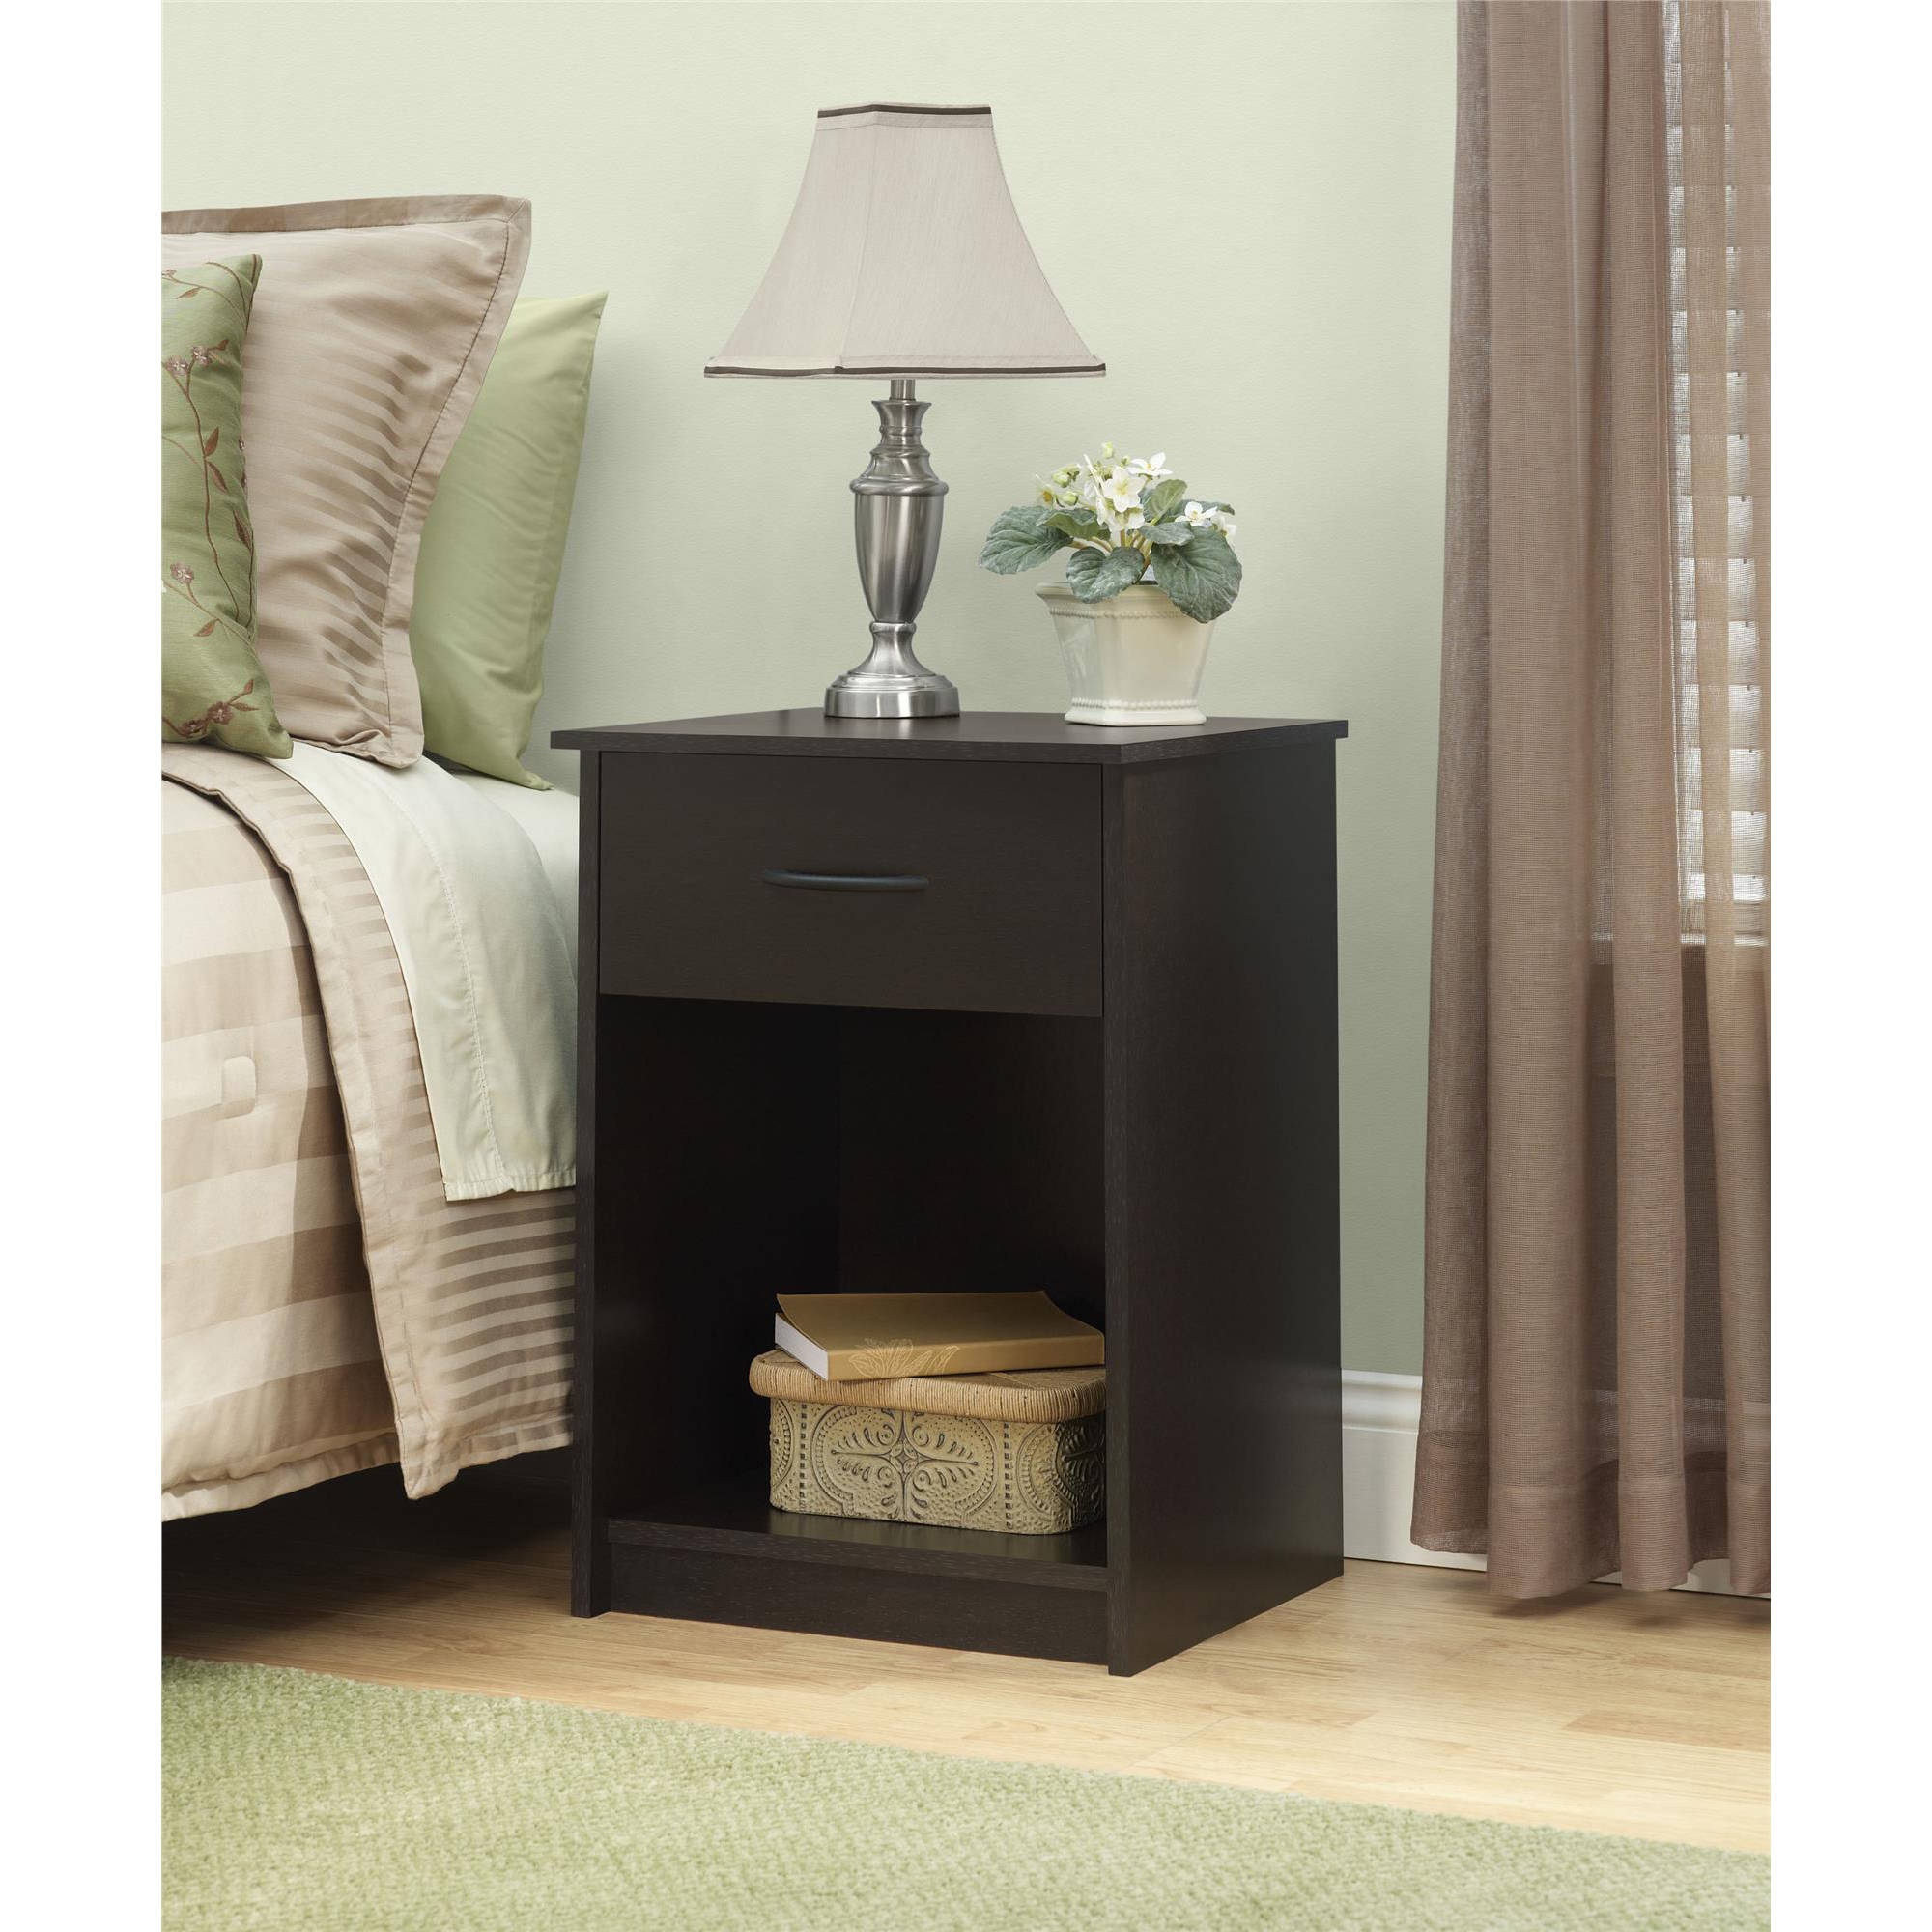 probably outrageous unbelievable modern furniture nightstand mainstays drawer end table espresso target mid century interior design trends metal scalloped edge ceramic pulls home